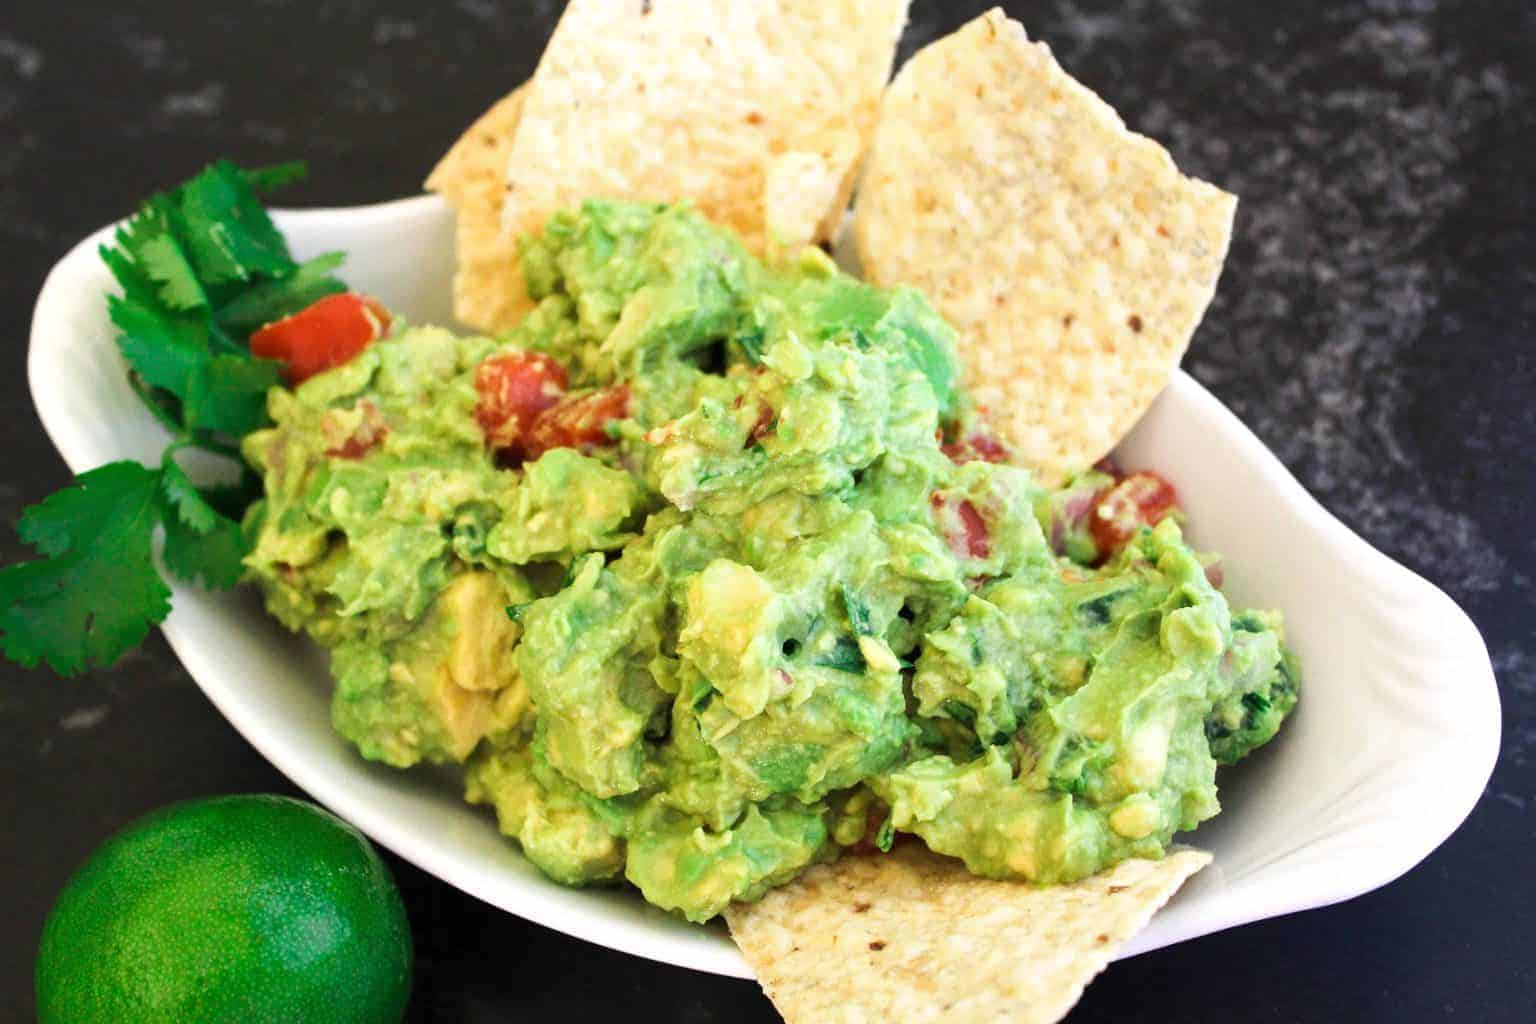 Guacamole in oval serving dish garnished with cilantro and chips.